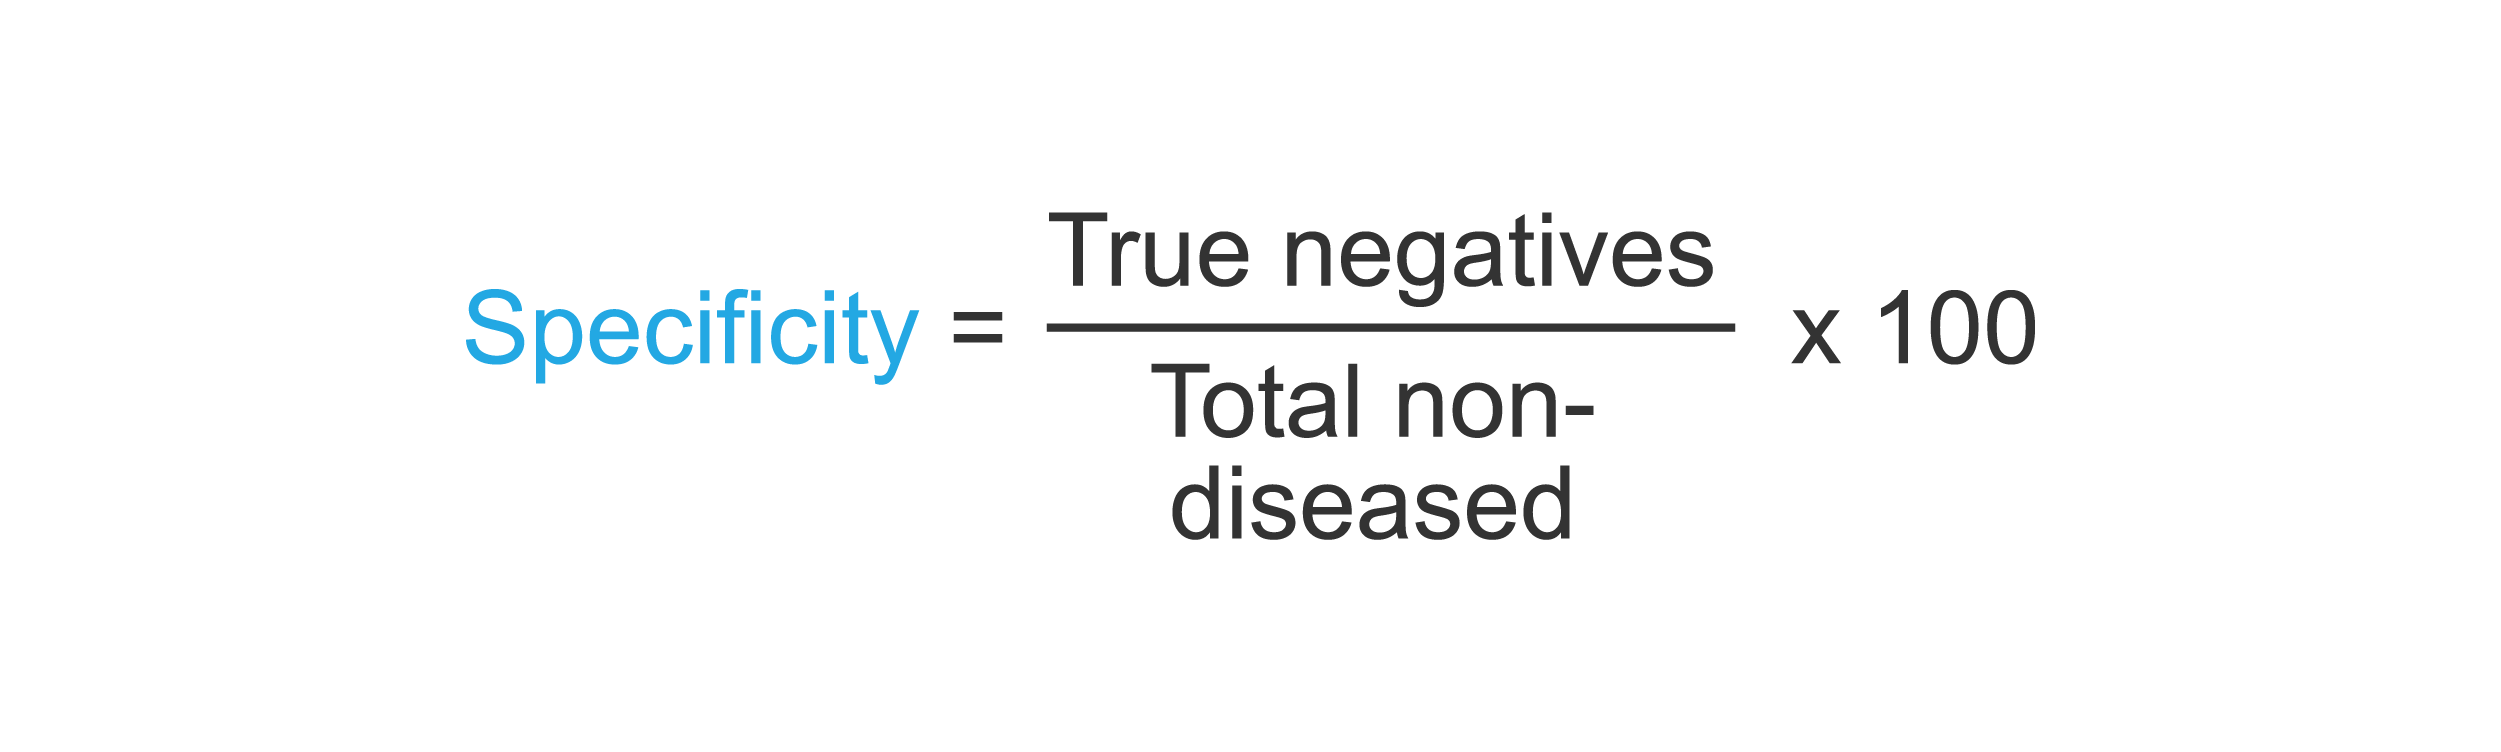 Equation to calculate specificity of a diagnostic test